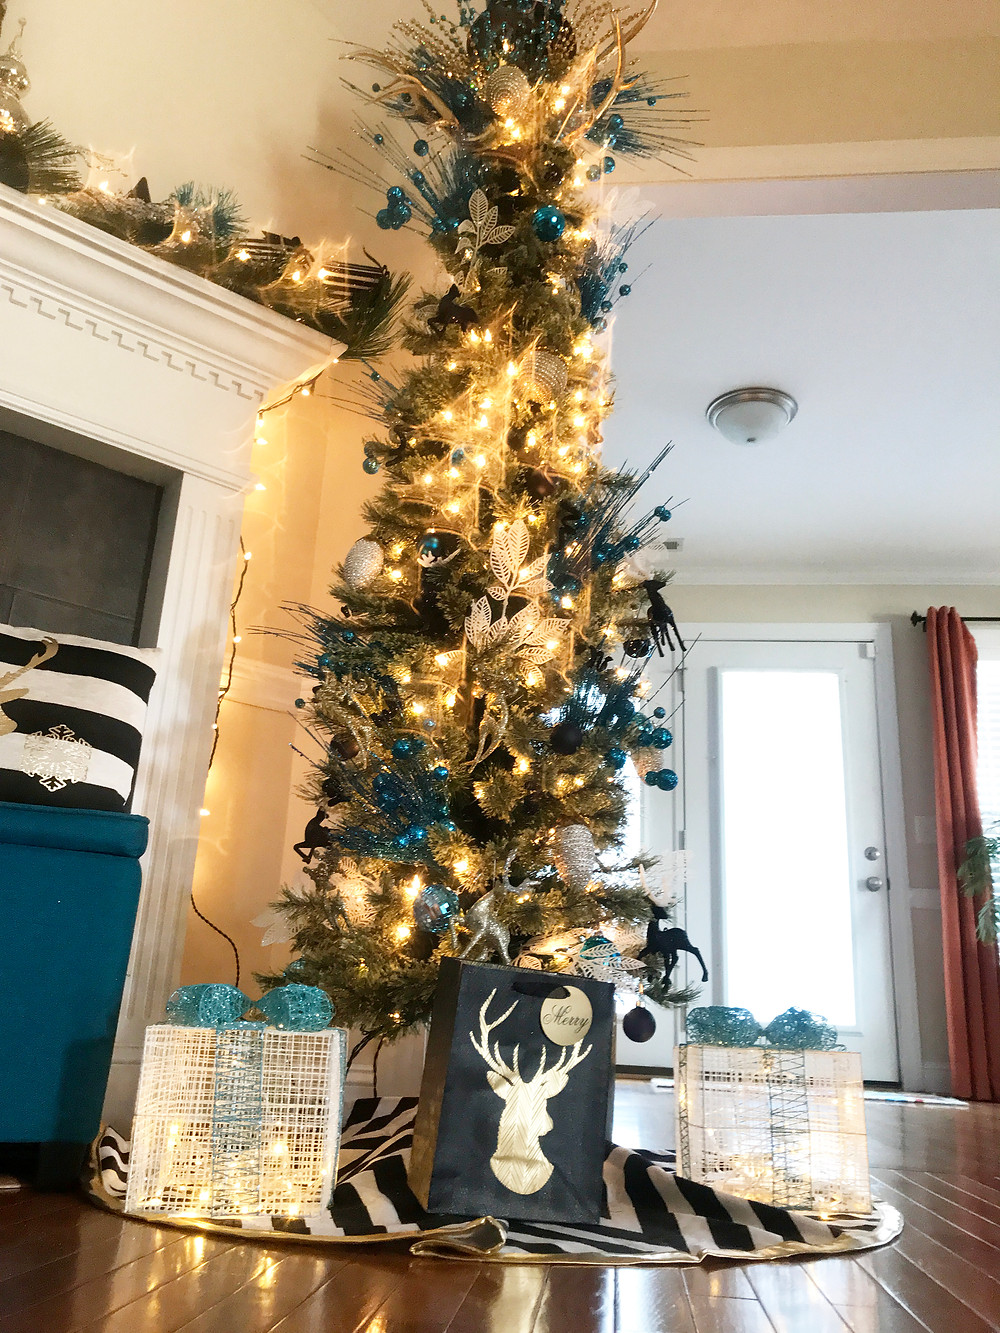 Another view of gold, teal, and silver Holiday Decor Styling for Christmas.